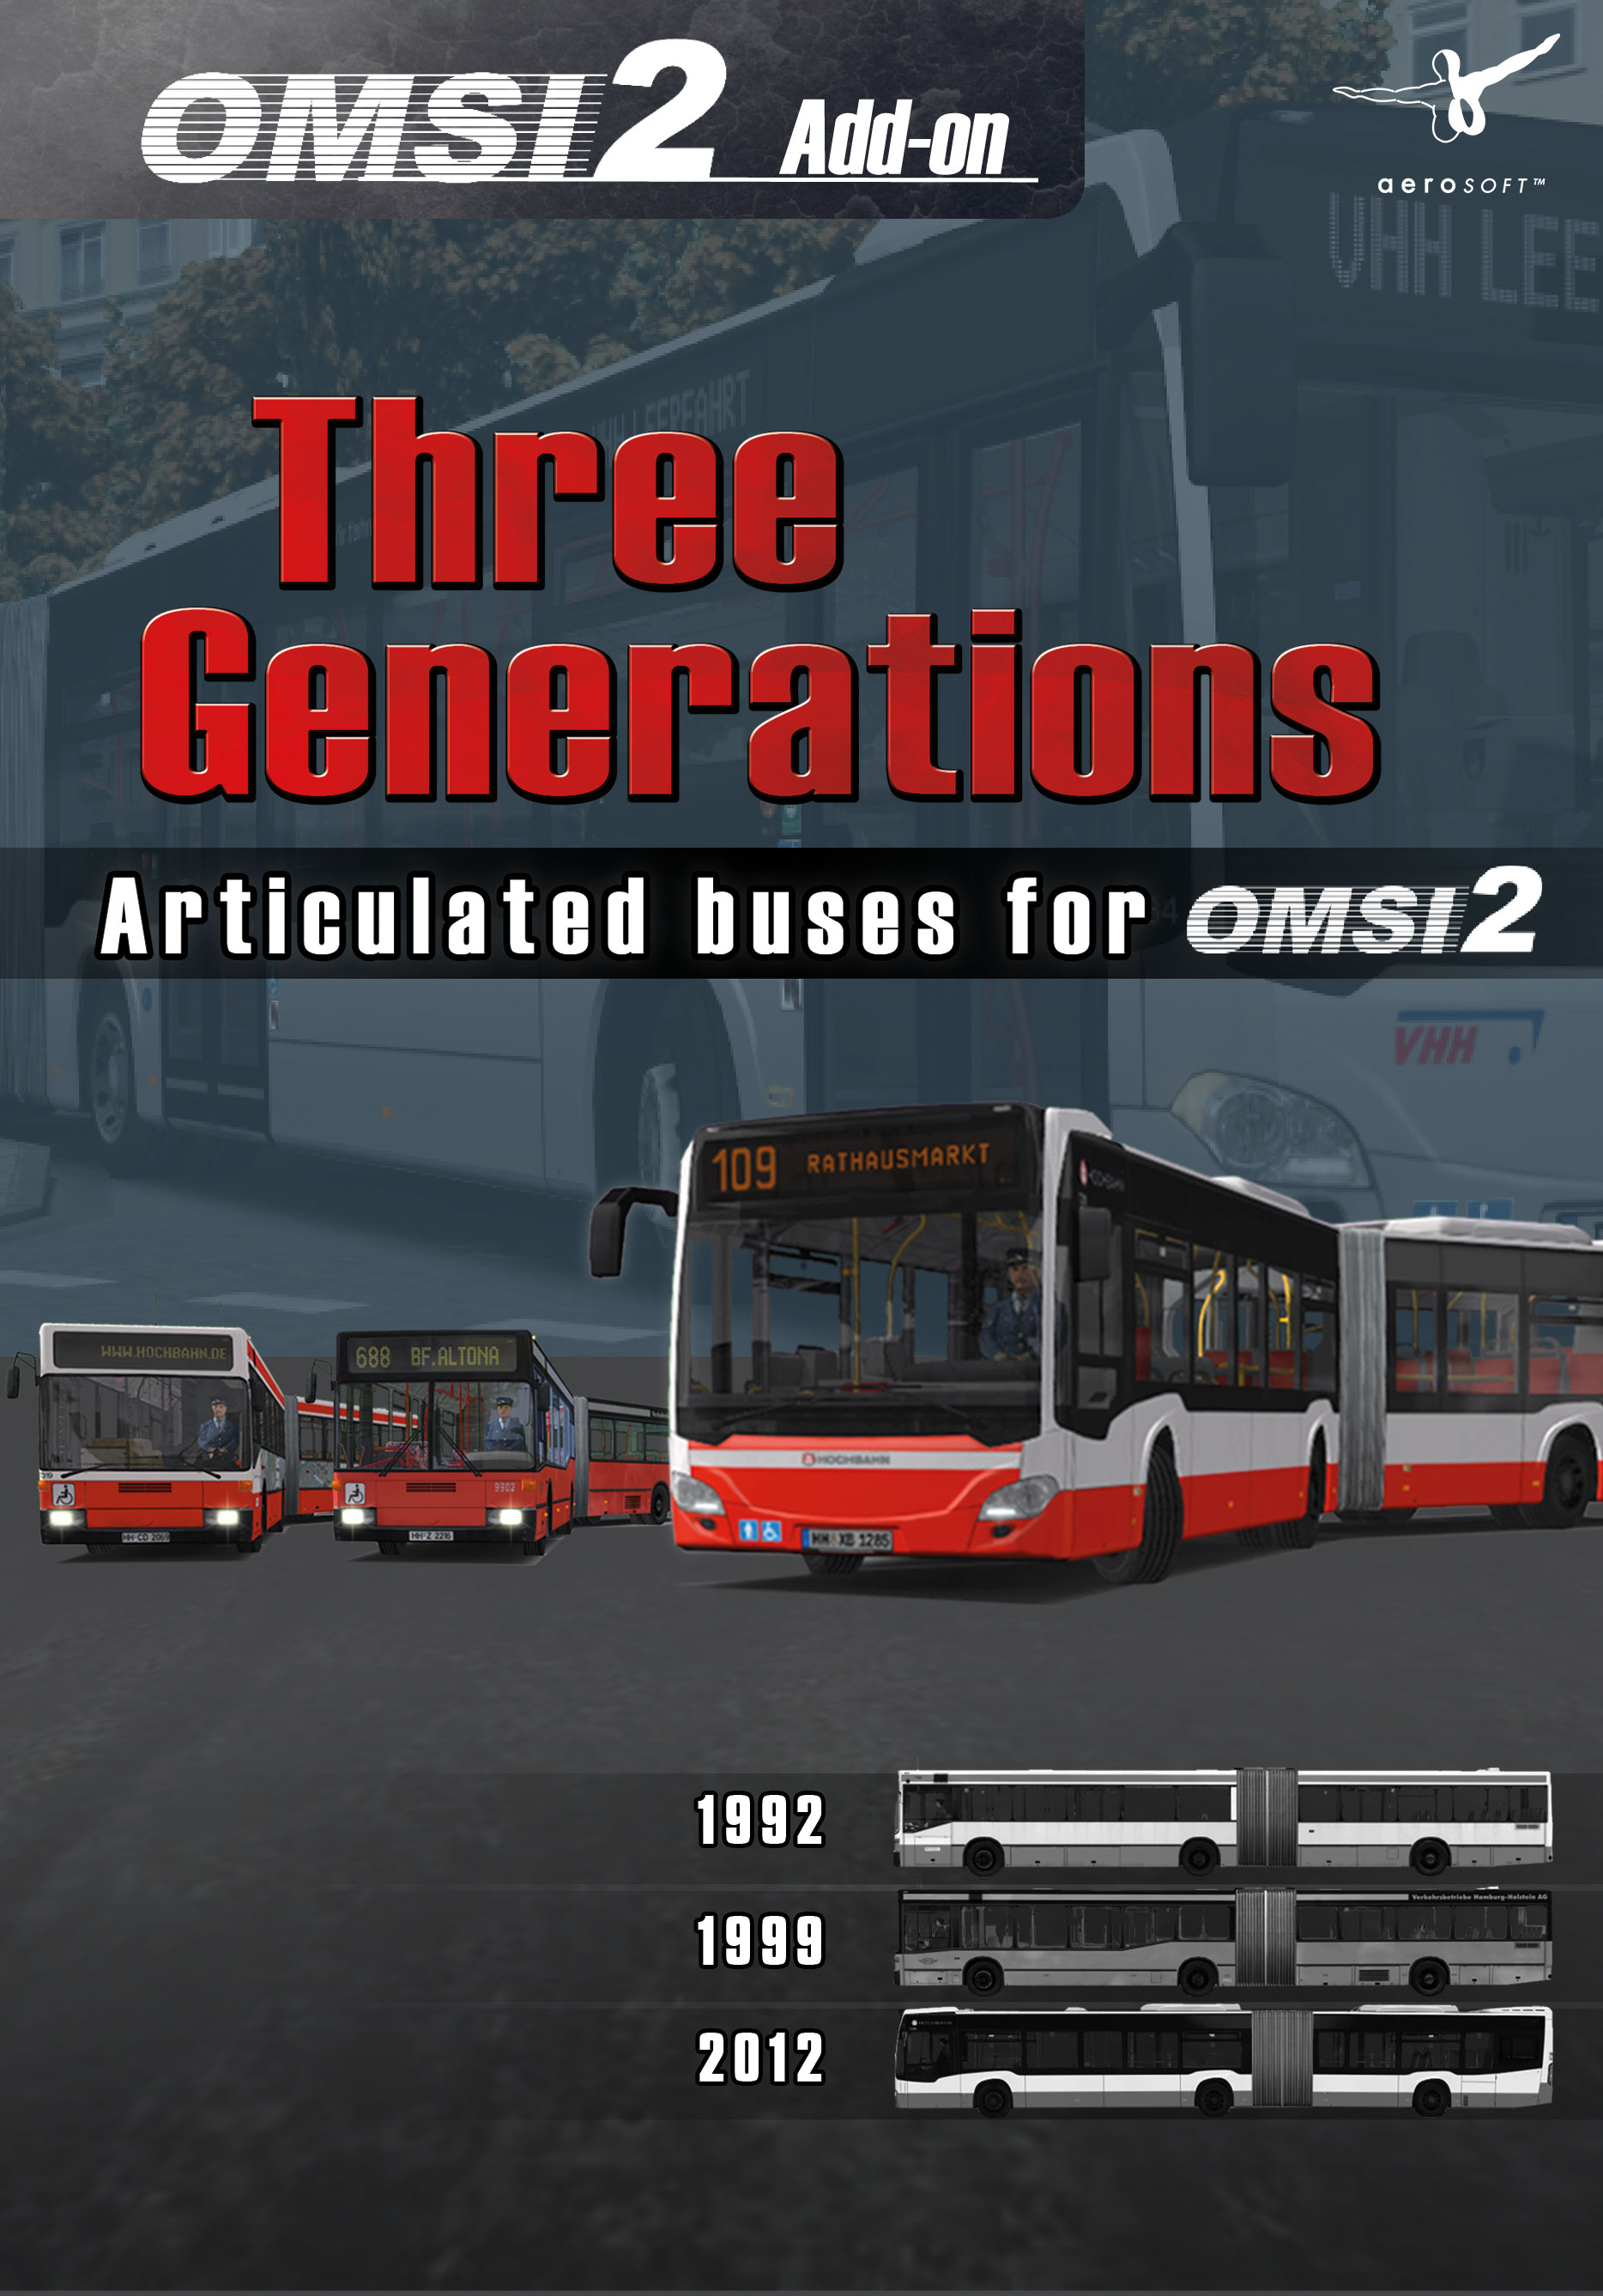 omsi-2-add-on-three-generations-code-jeu-pc-steam